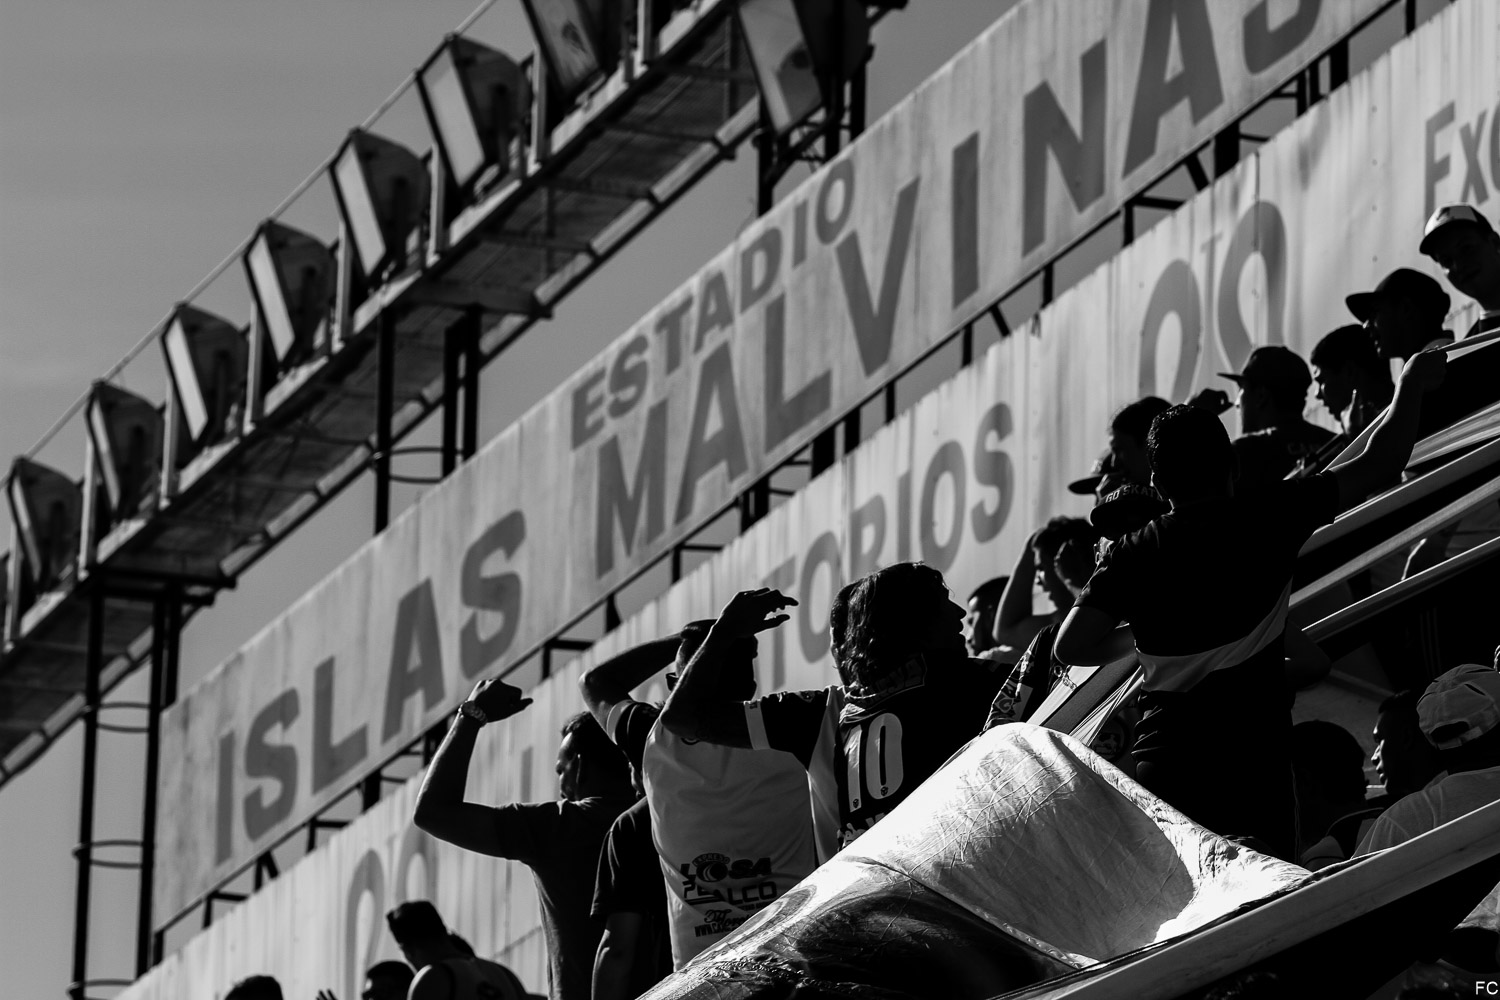 Fotos das torcidas em All Boys x Santamarina